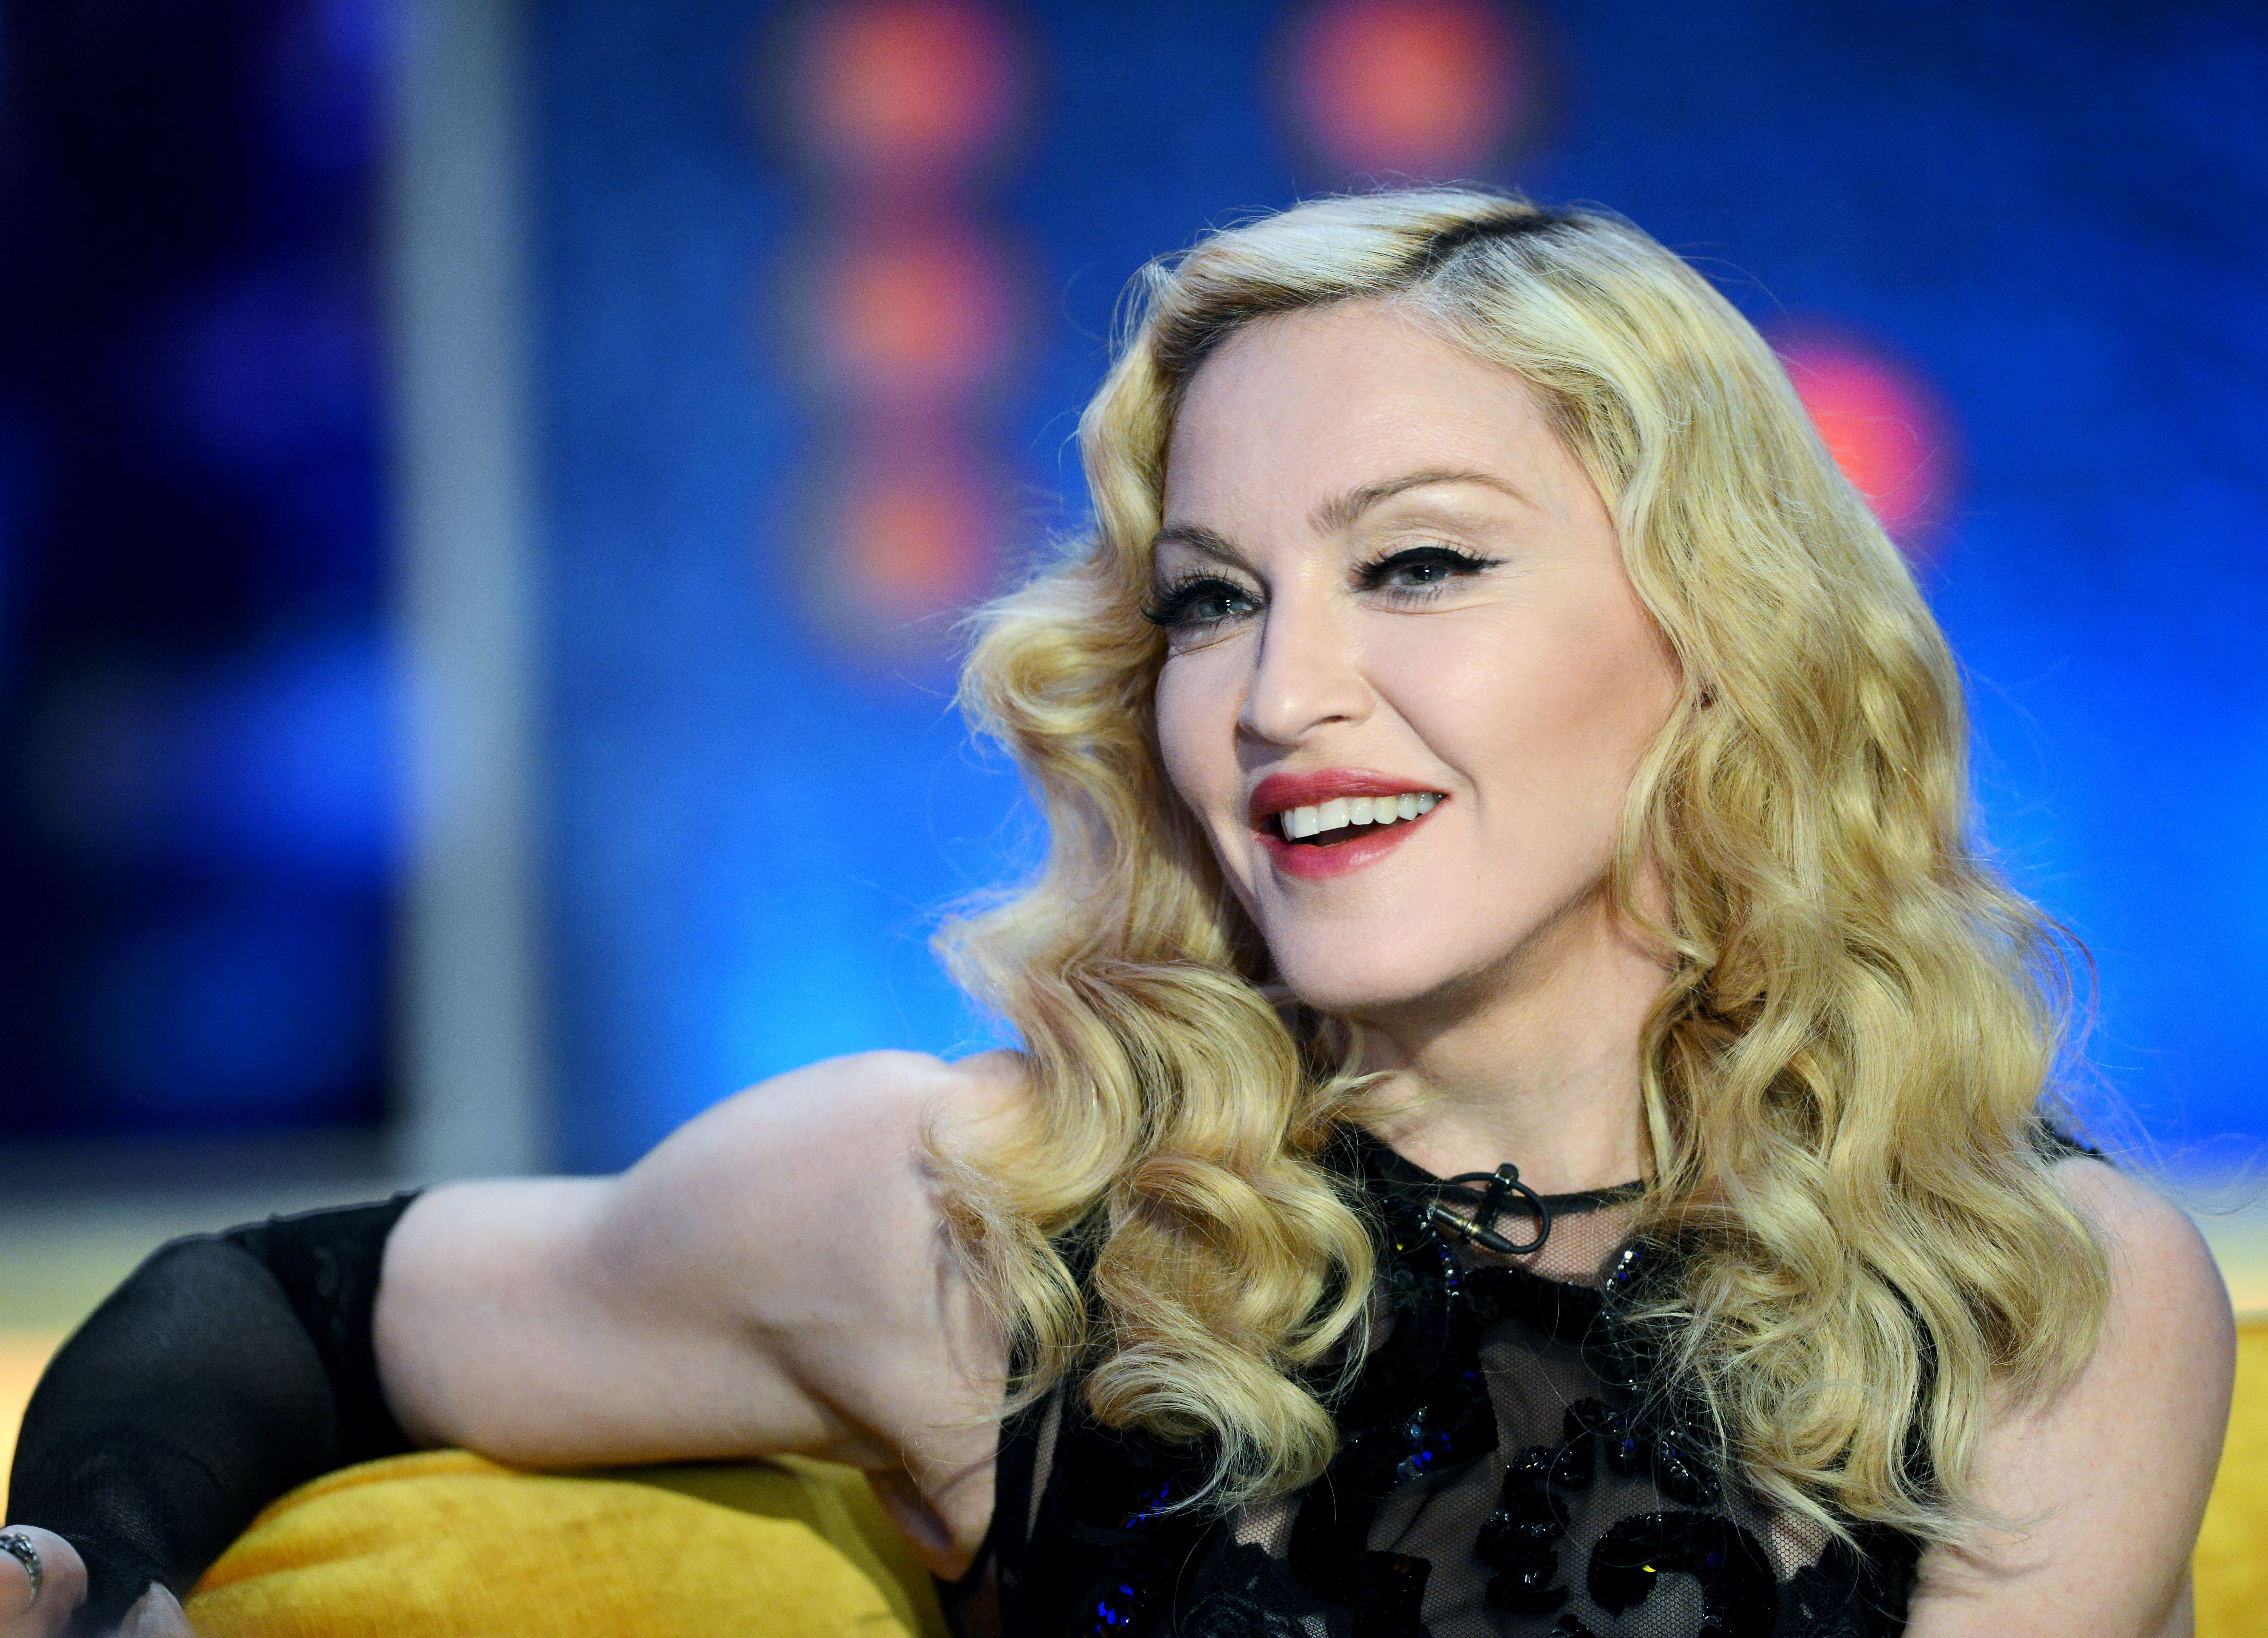 Singer Madonna at TV Show